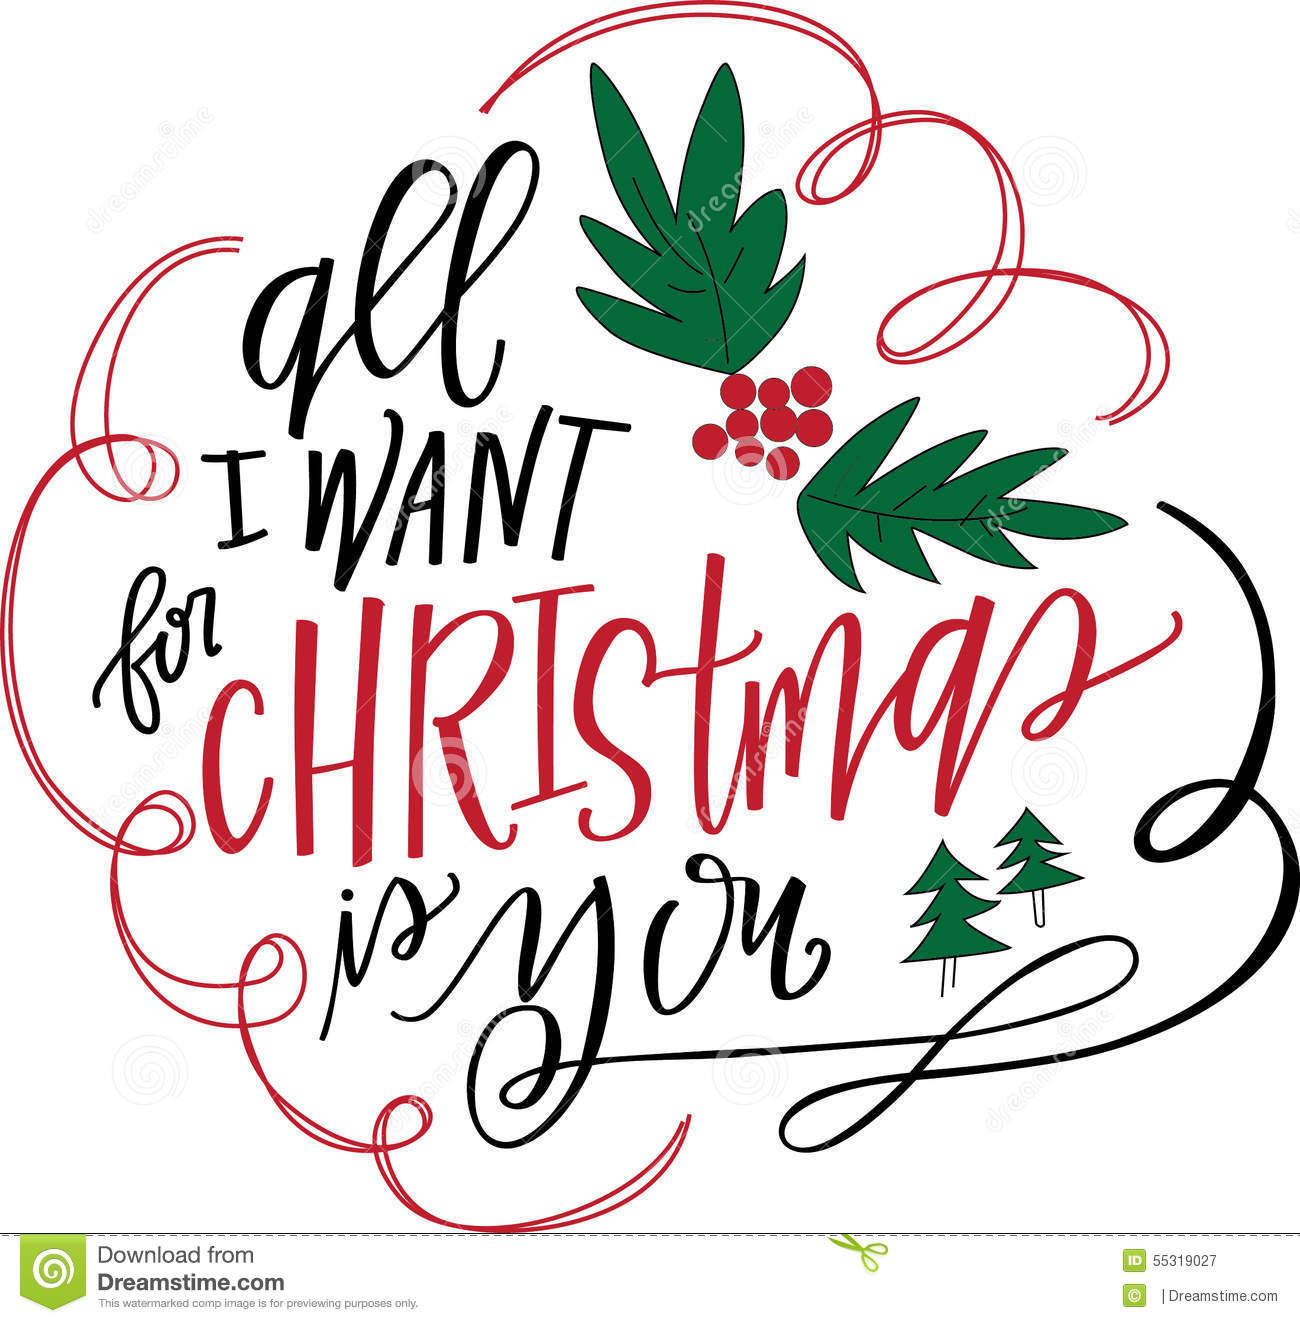 All I Want For Christmas Is You Stock Illustration - Image: 55319027